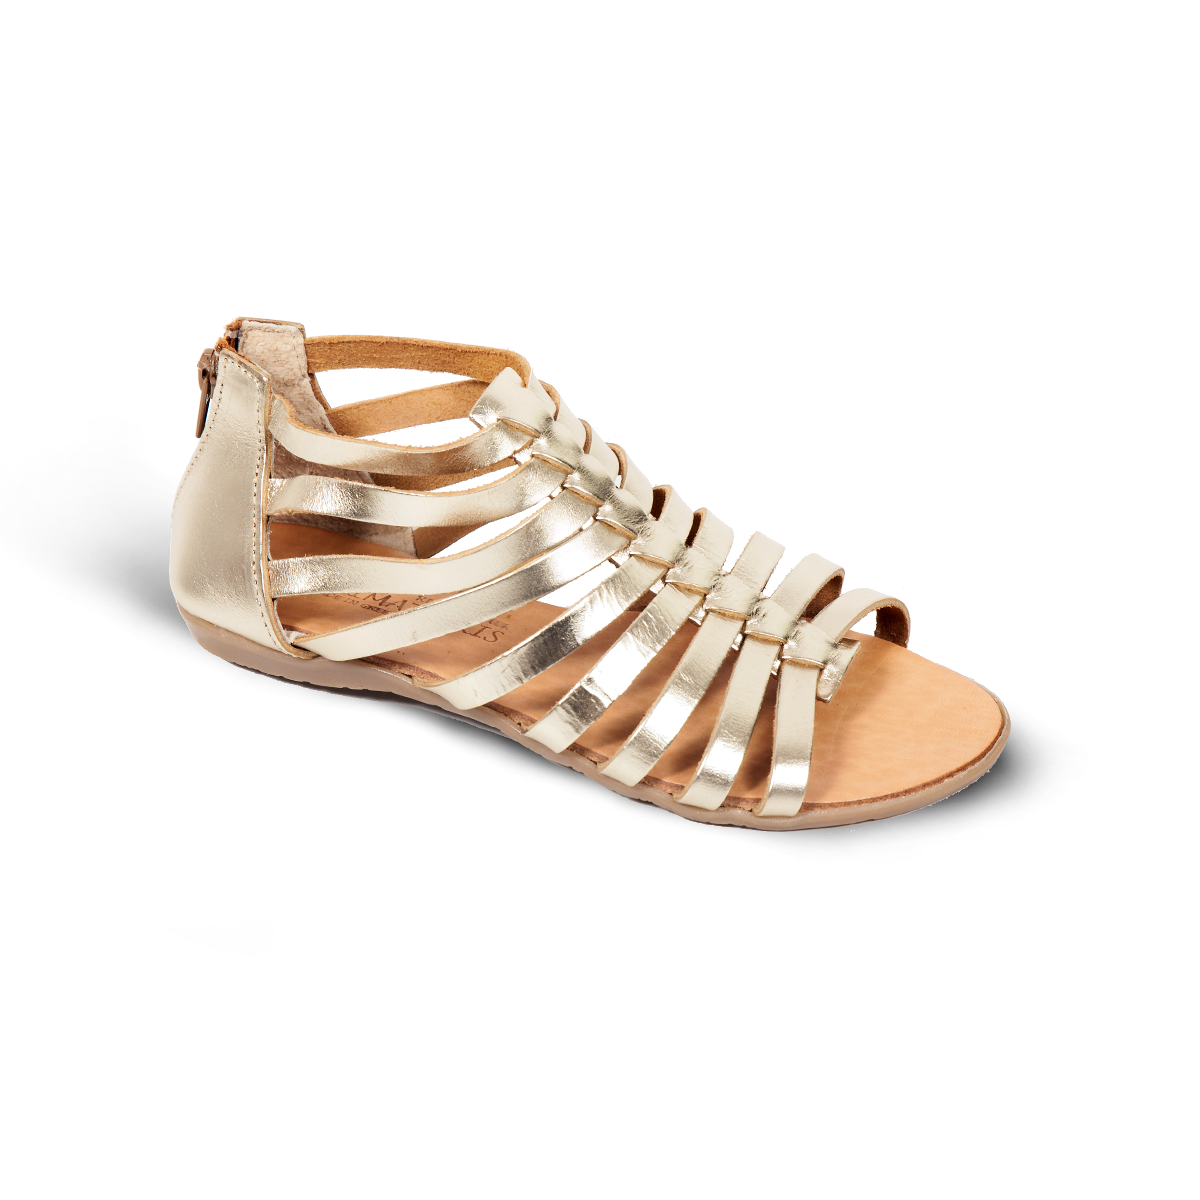 45f388052 Women Leather Sandals Klimatsakis 310. SKU  g10-021. Be the first to review  this product